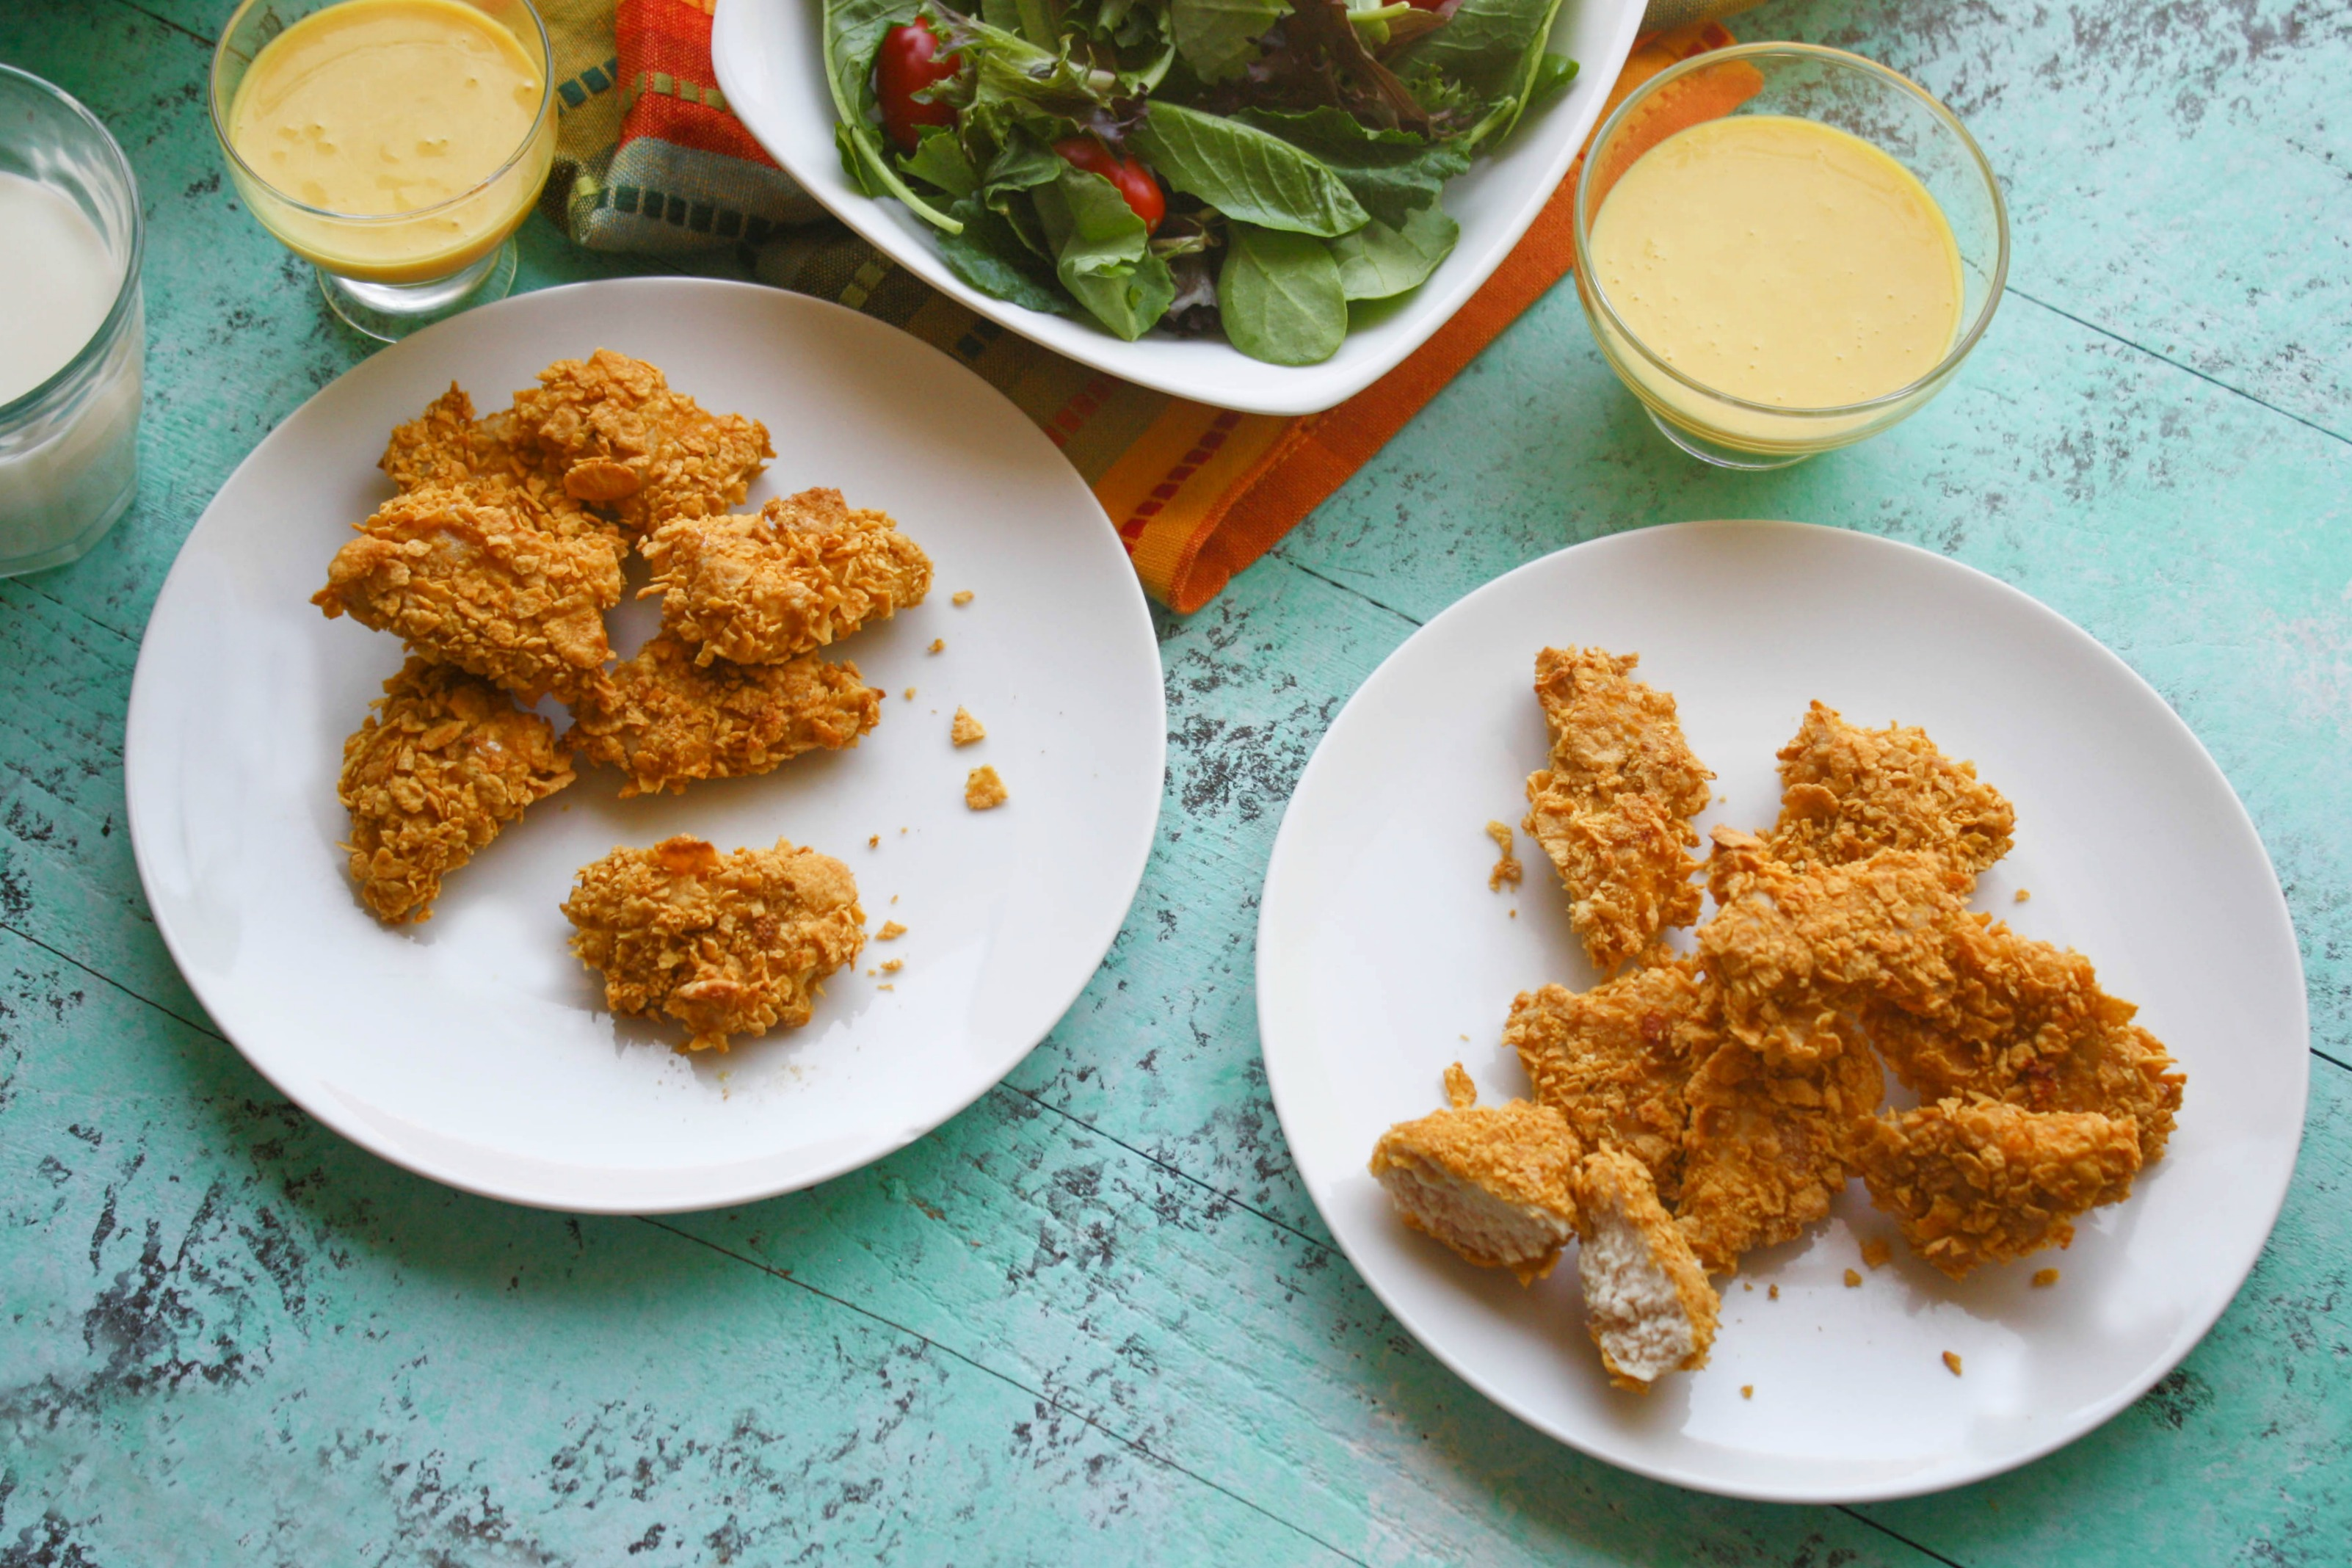 Crunchy Oven Baked Chicken Nuggets With Honey Mustard Sauce Are Perfect For Kids Of All Ages